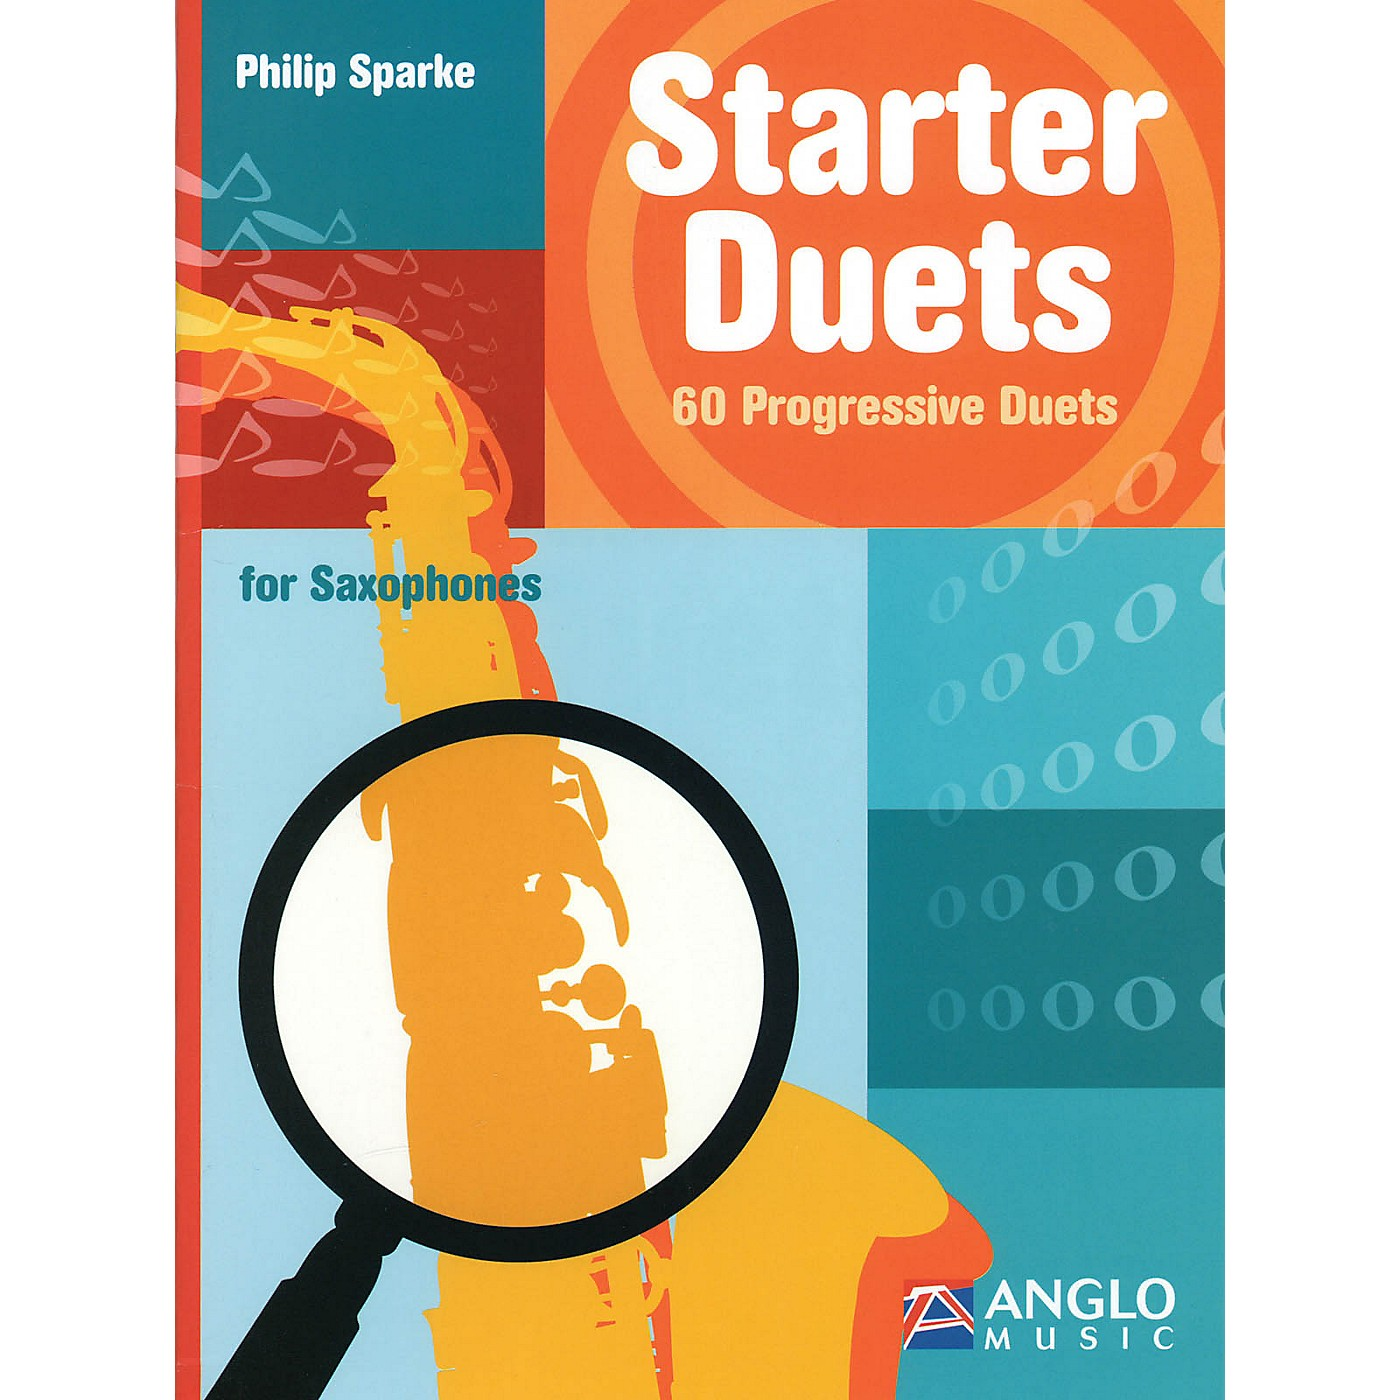 Anglo Music Starter Duets (60 Progressive Duets - Saxophone) Anglo Music Press Play-Along Series by Philip Sparke thumbnail